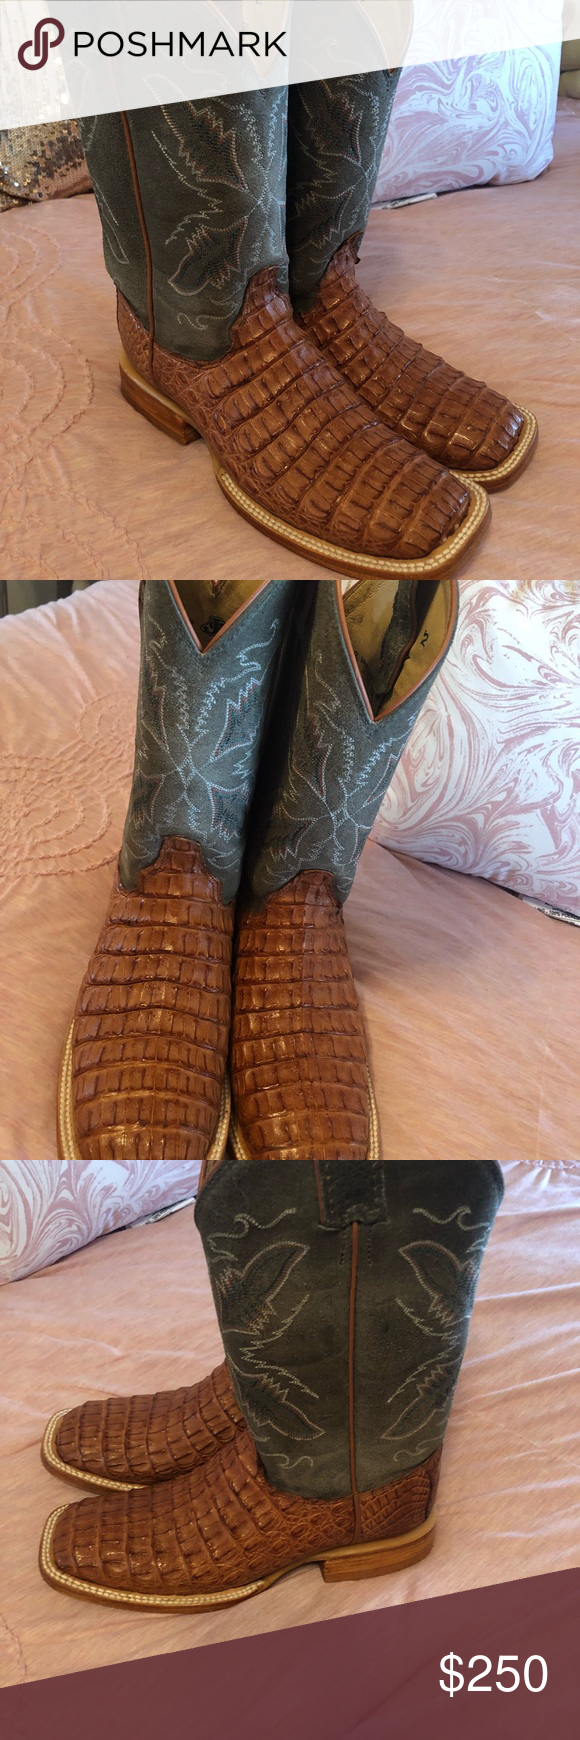 8166d810a0e Justin square toe caimán boots Used once for a de hour se. Size 6 ...